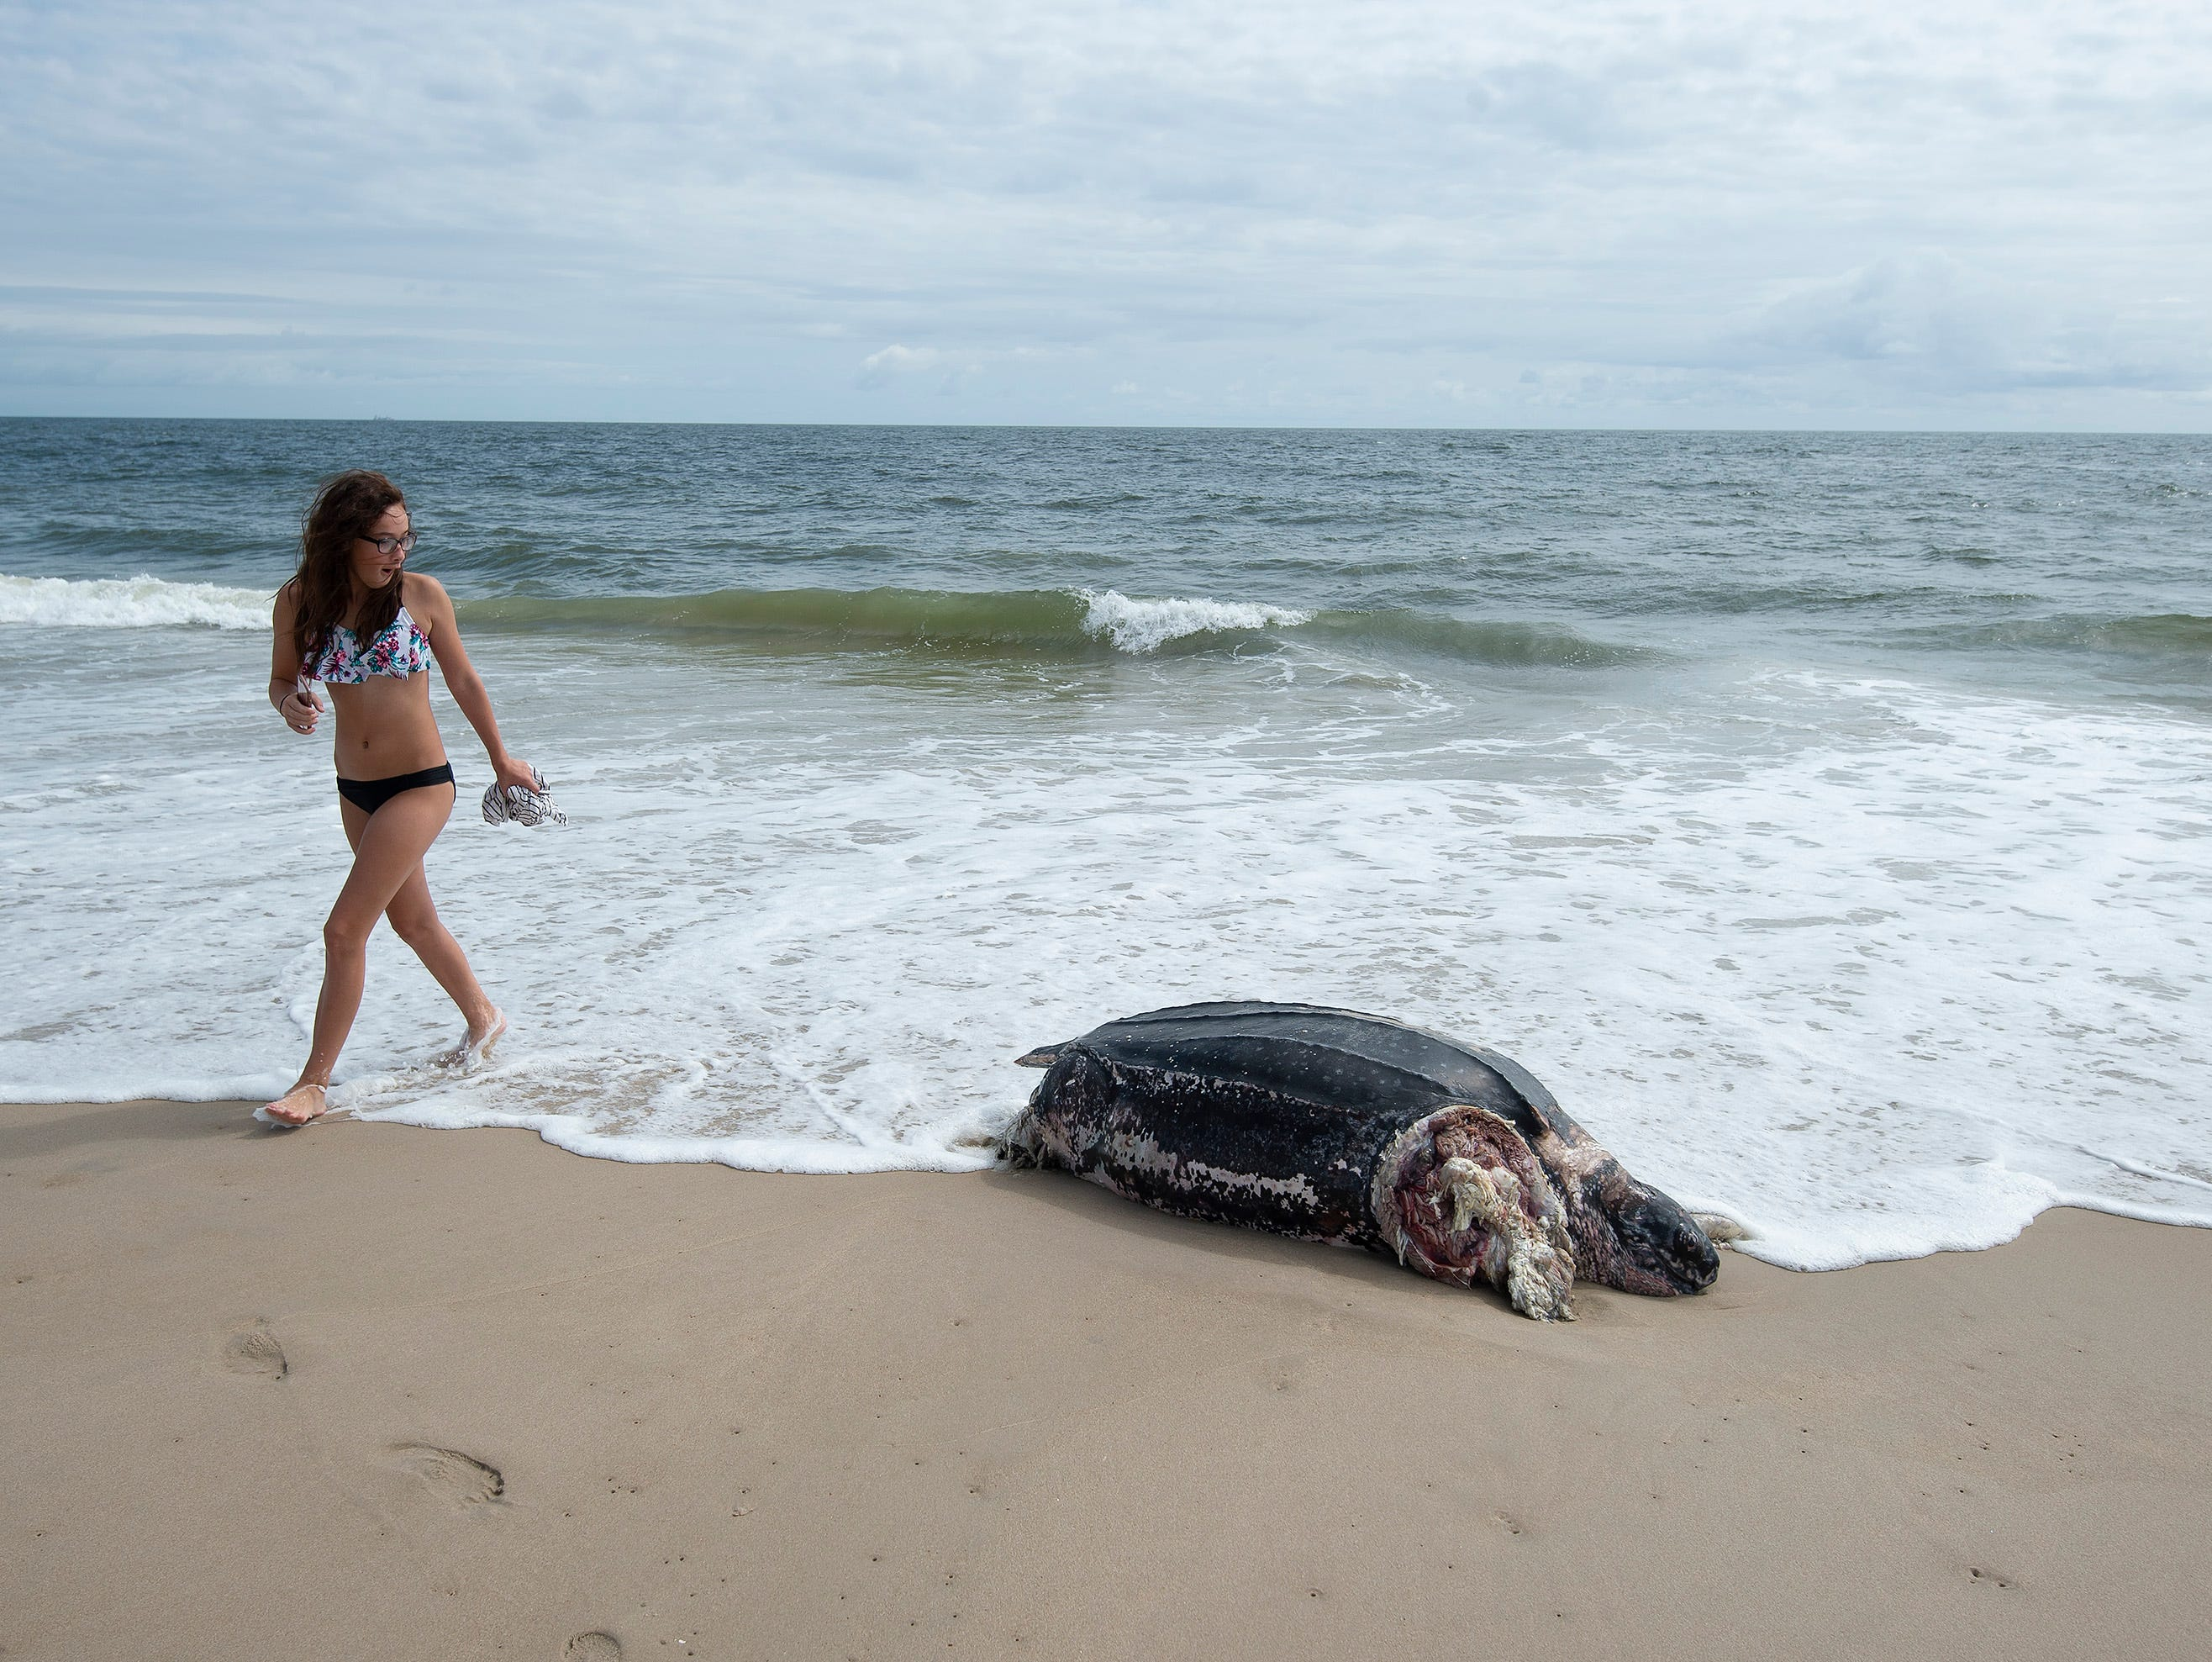 A beachgoer looks at a leatherback sea turtle that washed up along the Delaware Seashore State Park Beach, Tower Road south of Dewey Beach.